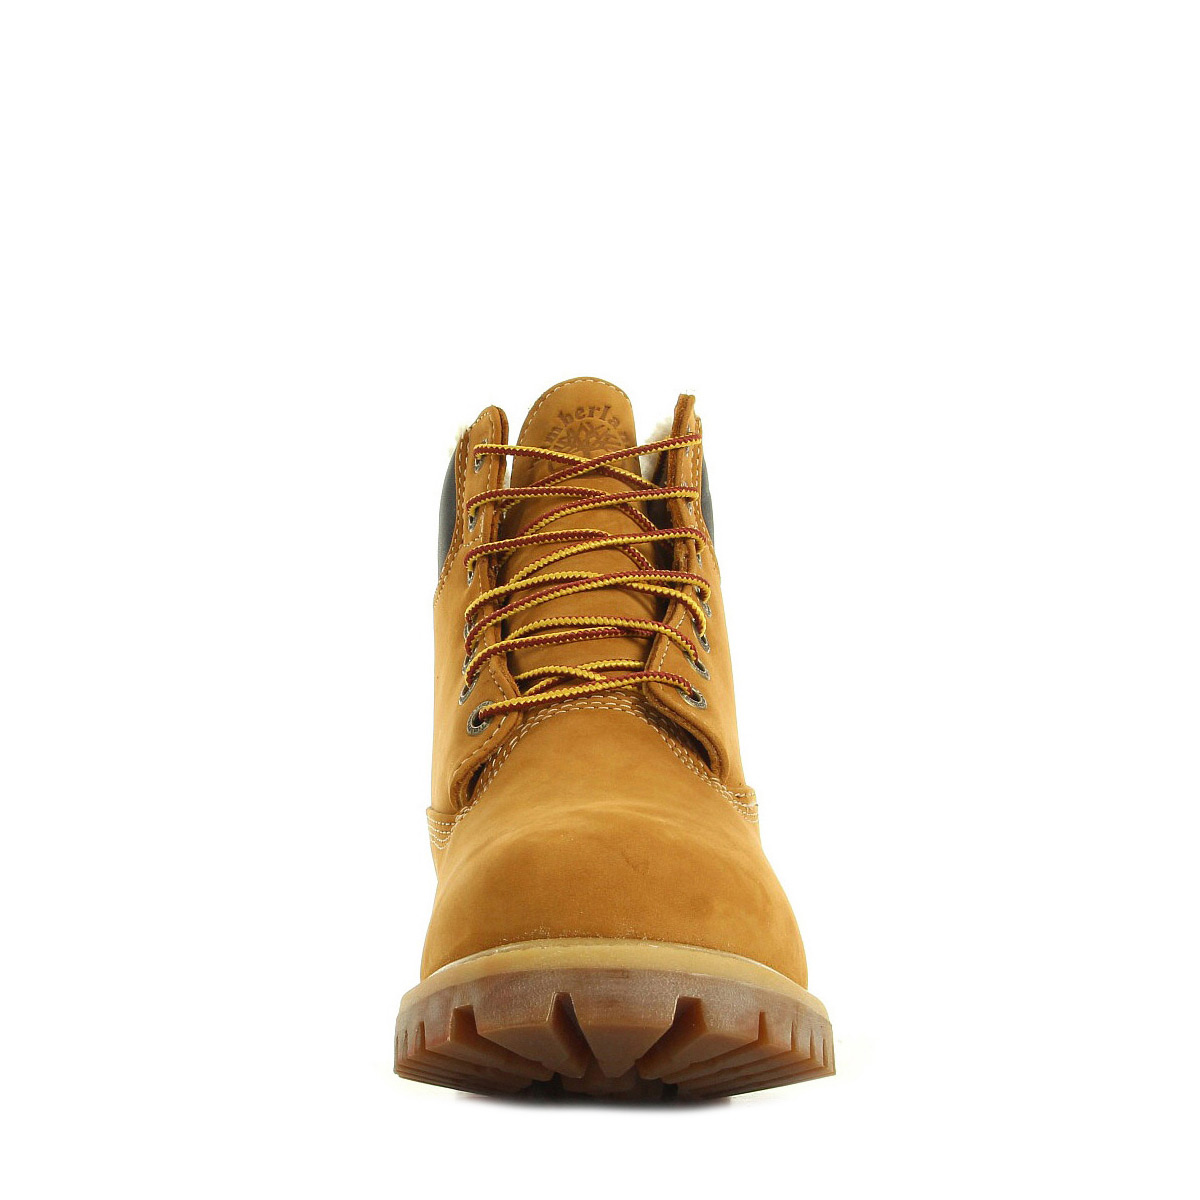 Timberland 6 In Fur Warm Wheat Nubuck Warm Lined CA13GA, Boots homme